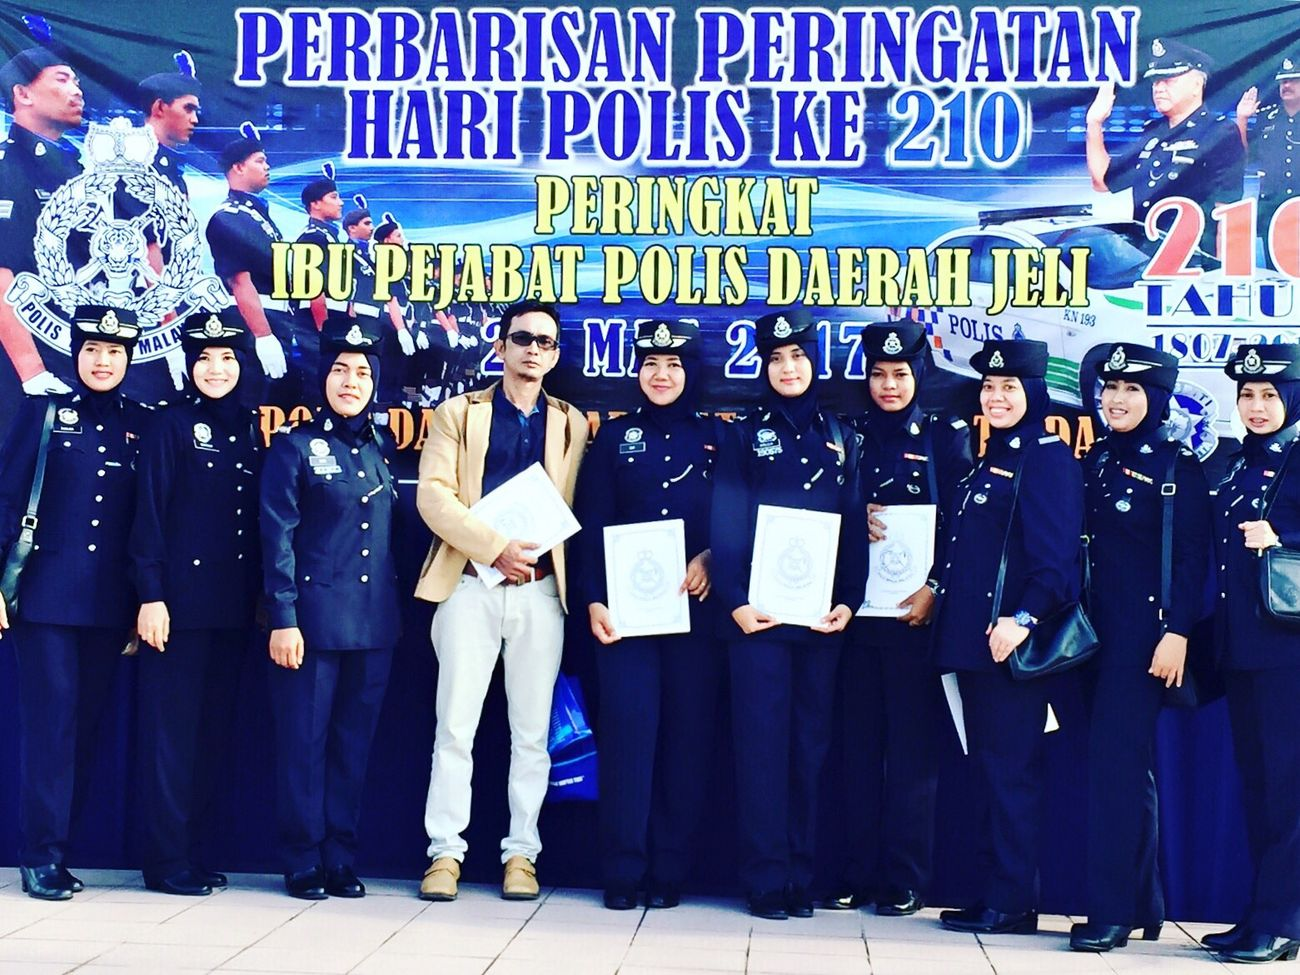 🇲🇾Selamat Hari Polis 210 Tahun 2017👮🏻‍♀️ Hi Its Me Self Portrait Police Woman Police Uniform Woman In Uniform Woman Portrait Woman Of EyeEm Self Portrait Young Women Adult Young Adult Human Body Part Portrait Photography Front View Outdoors Happy Police Day 2017 Kelantan #malaysia